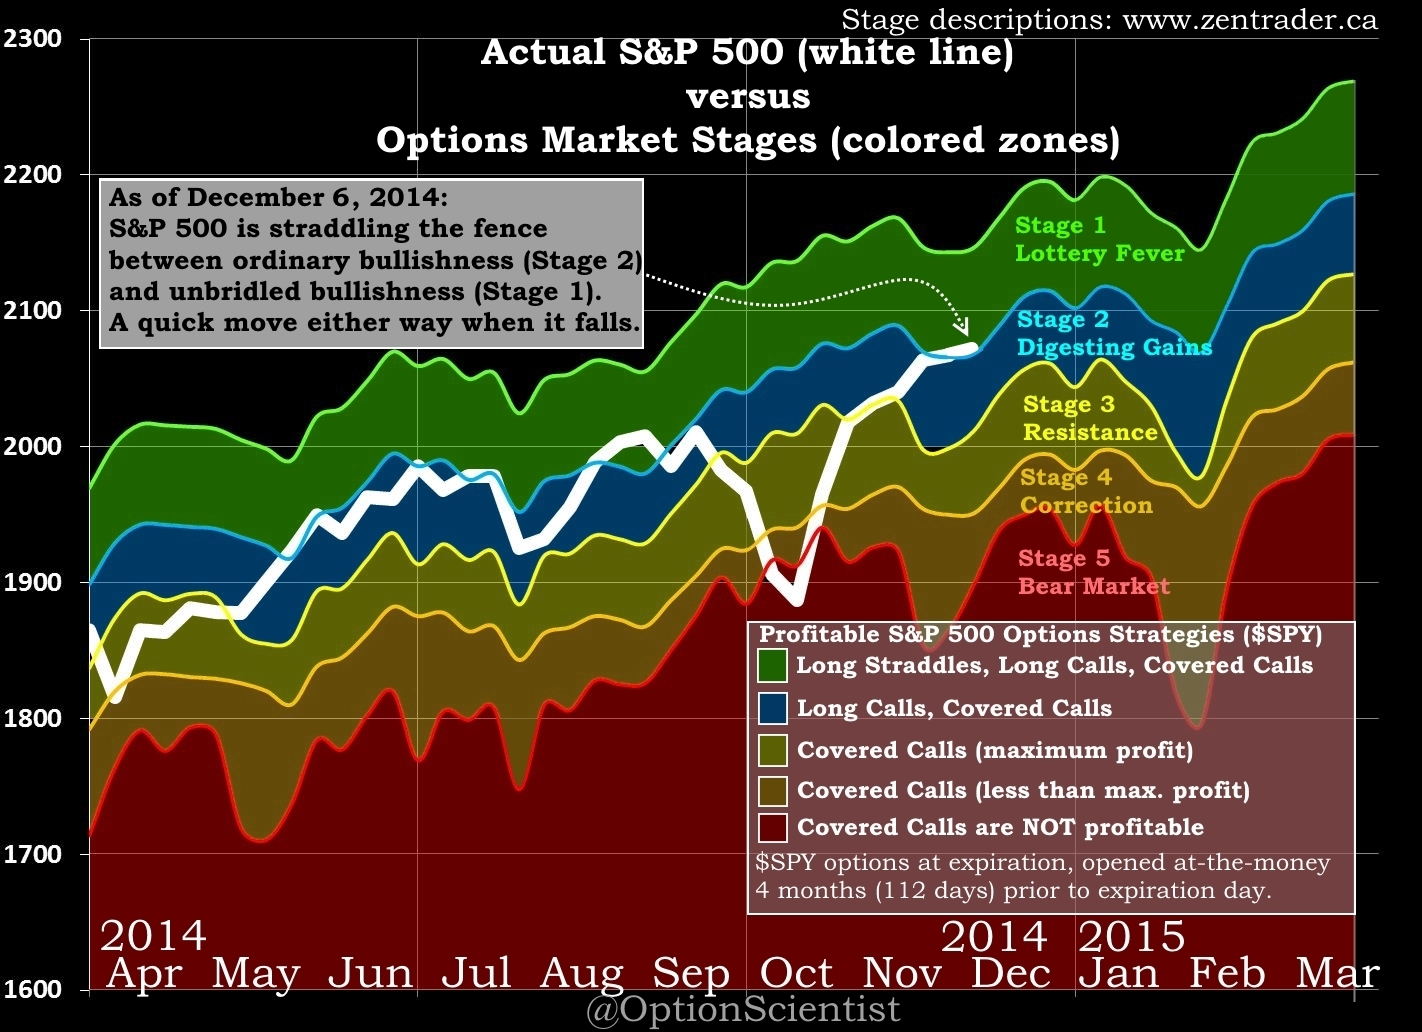 Stock options are for speculators